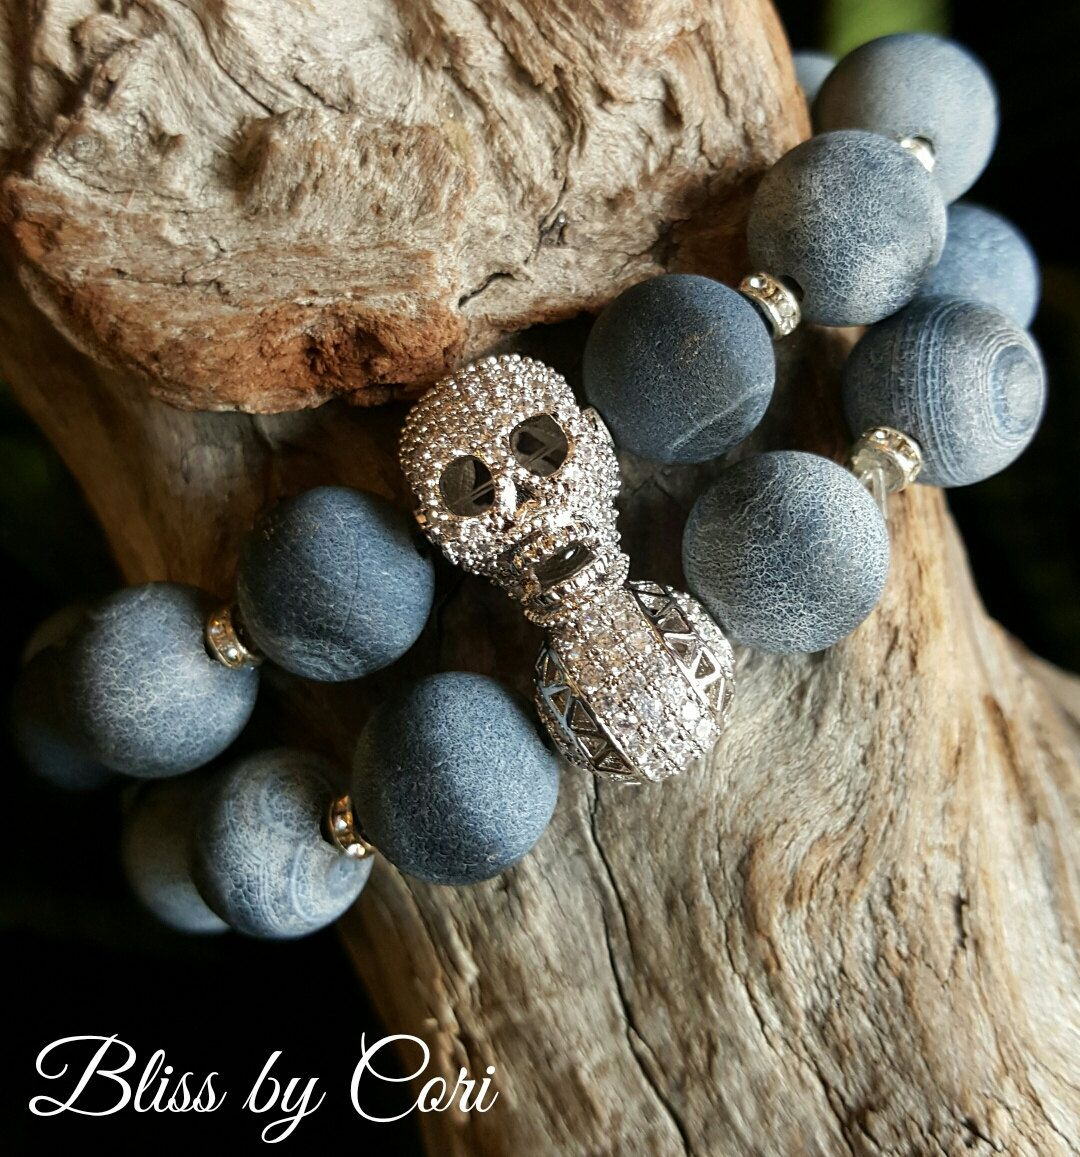 Frosted Fire Agate with Pave Skull Stretch Bracelet Duo *FREE SHIPPING*  by BlissbyCori on Etsy $50.00